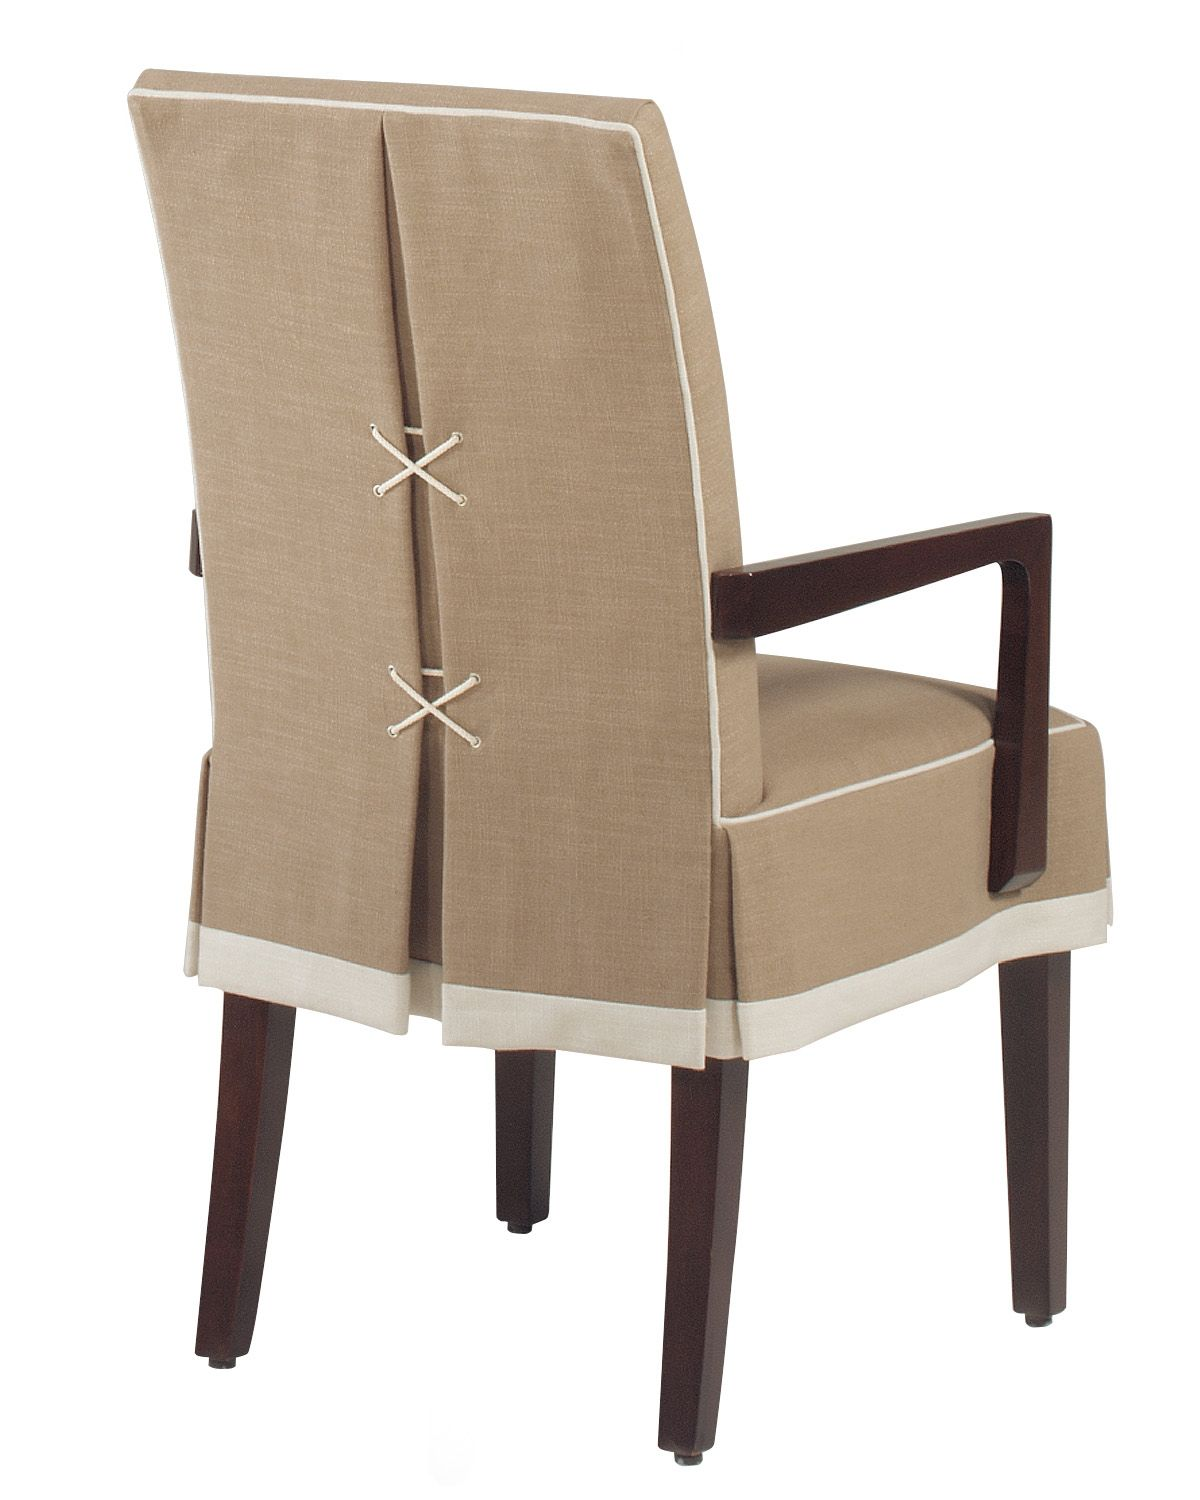 Dining Room Arm Chair Slipcovers Part - 18: Covers For Dining Room Chairs With Arms